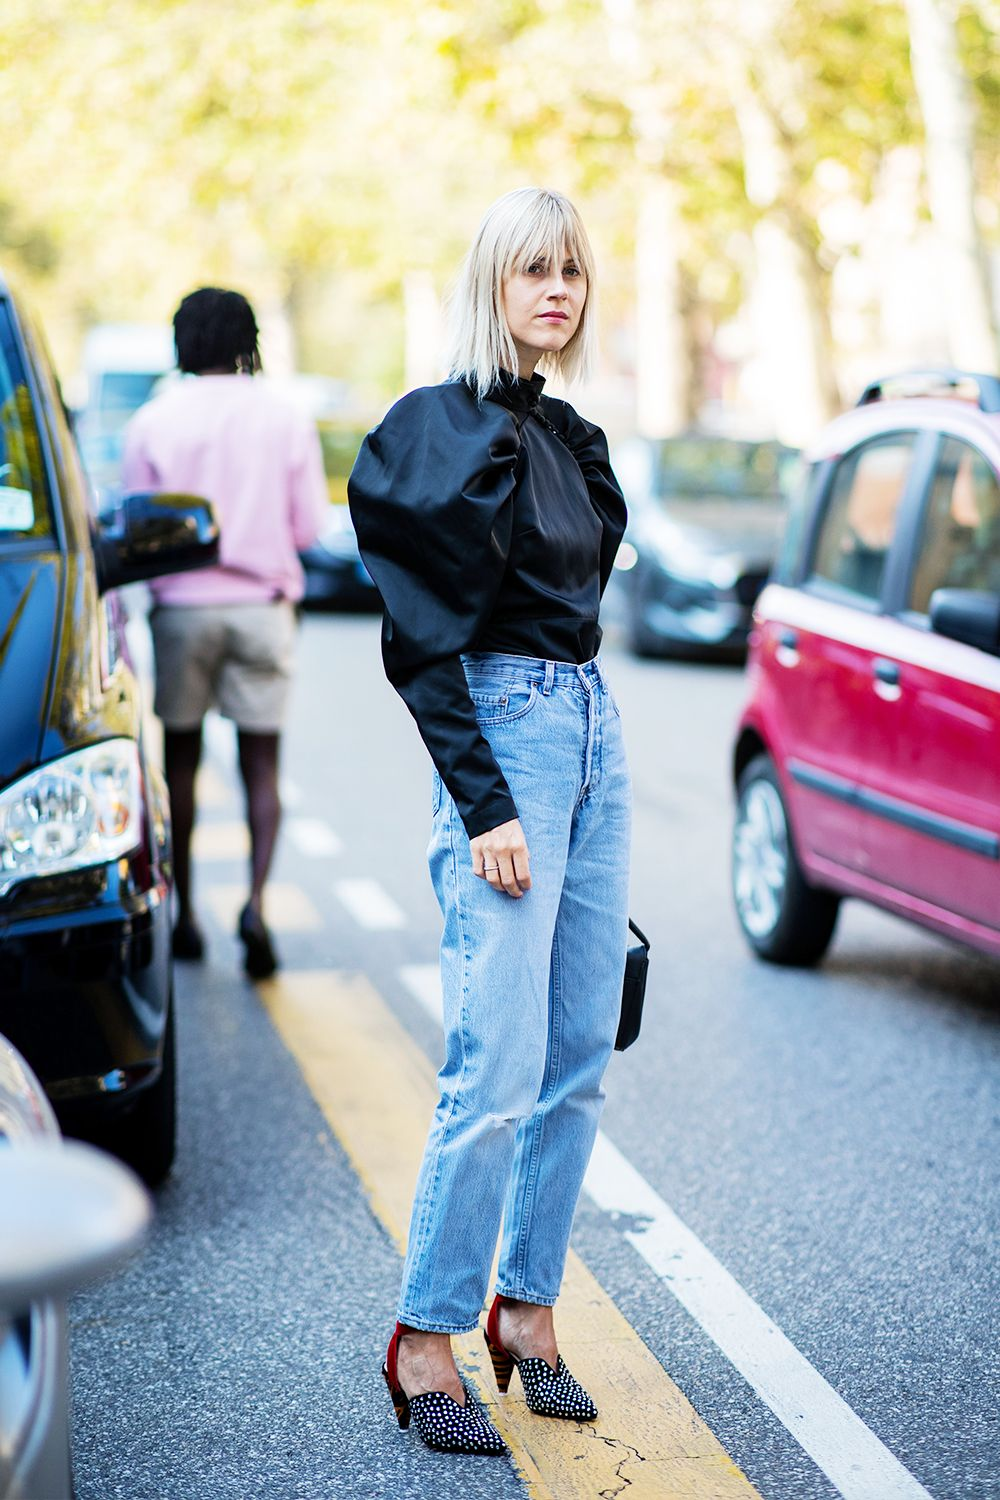 Sorry, Skinny Jeans—This Style Is Going to Be Our #1 in 2019